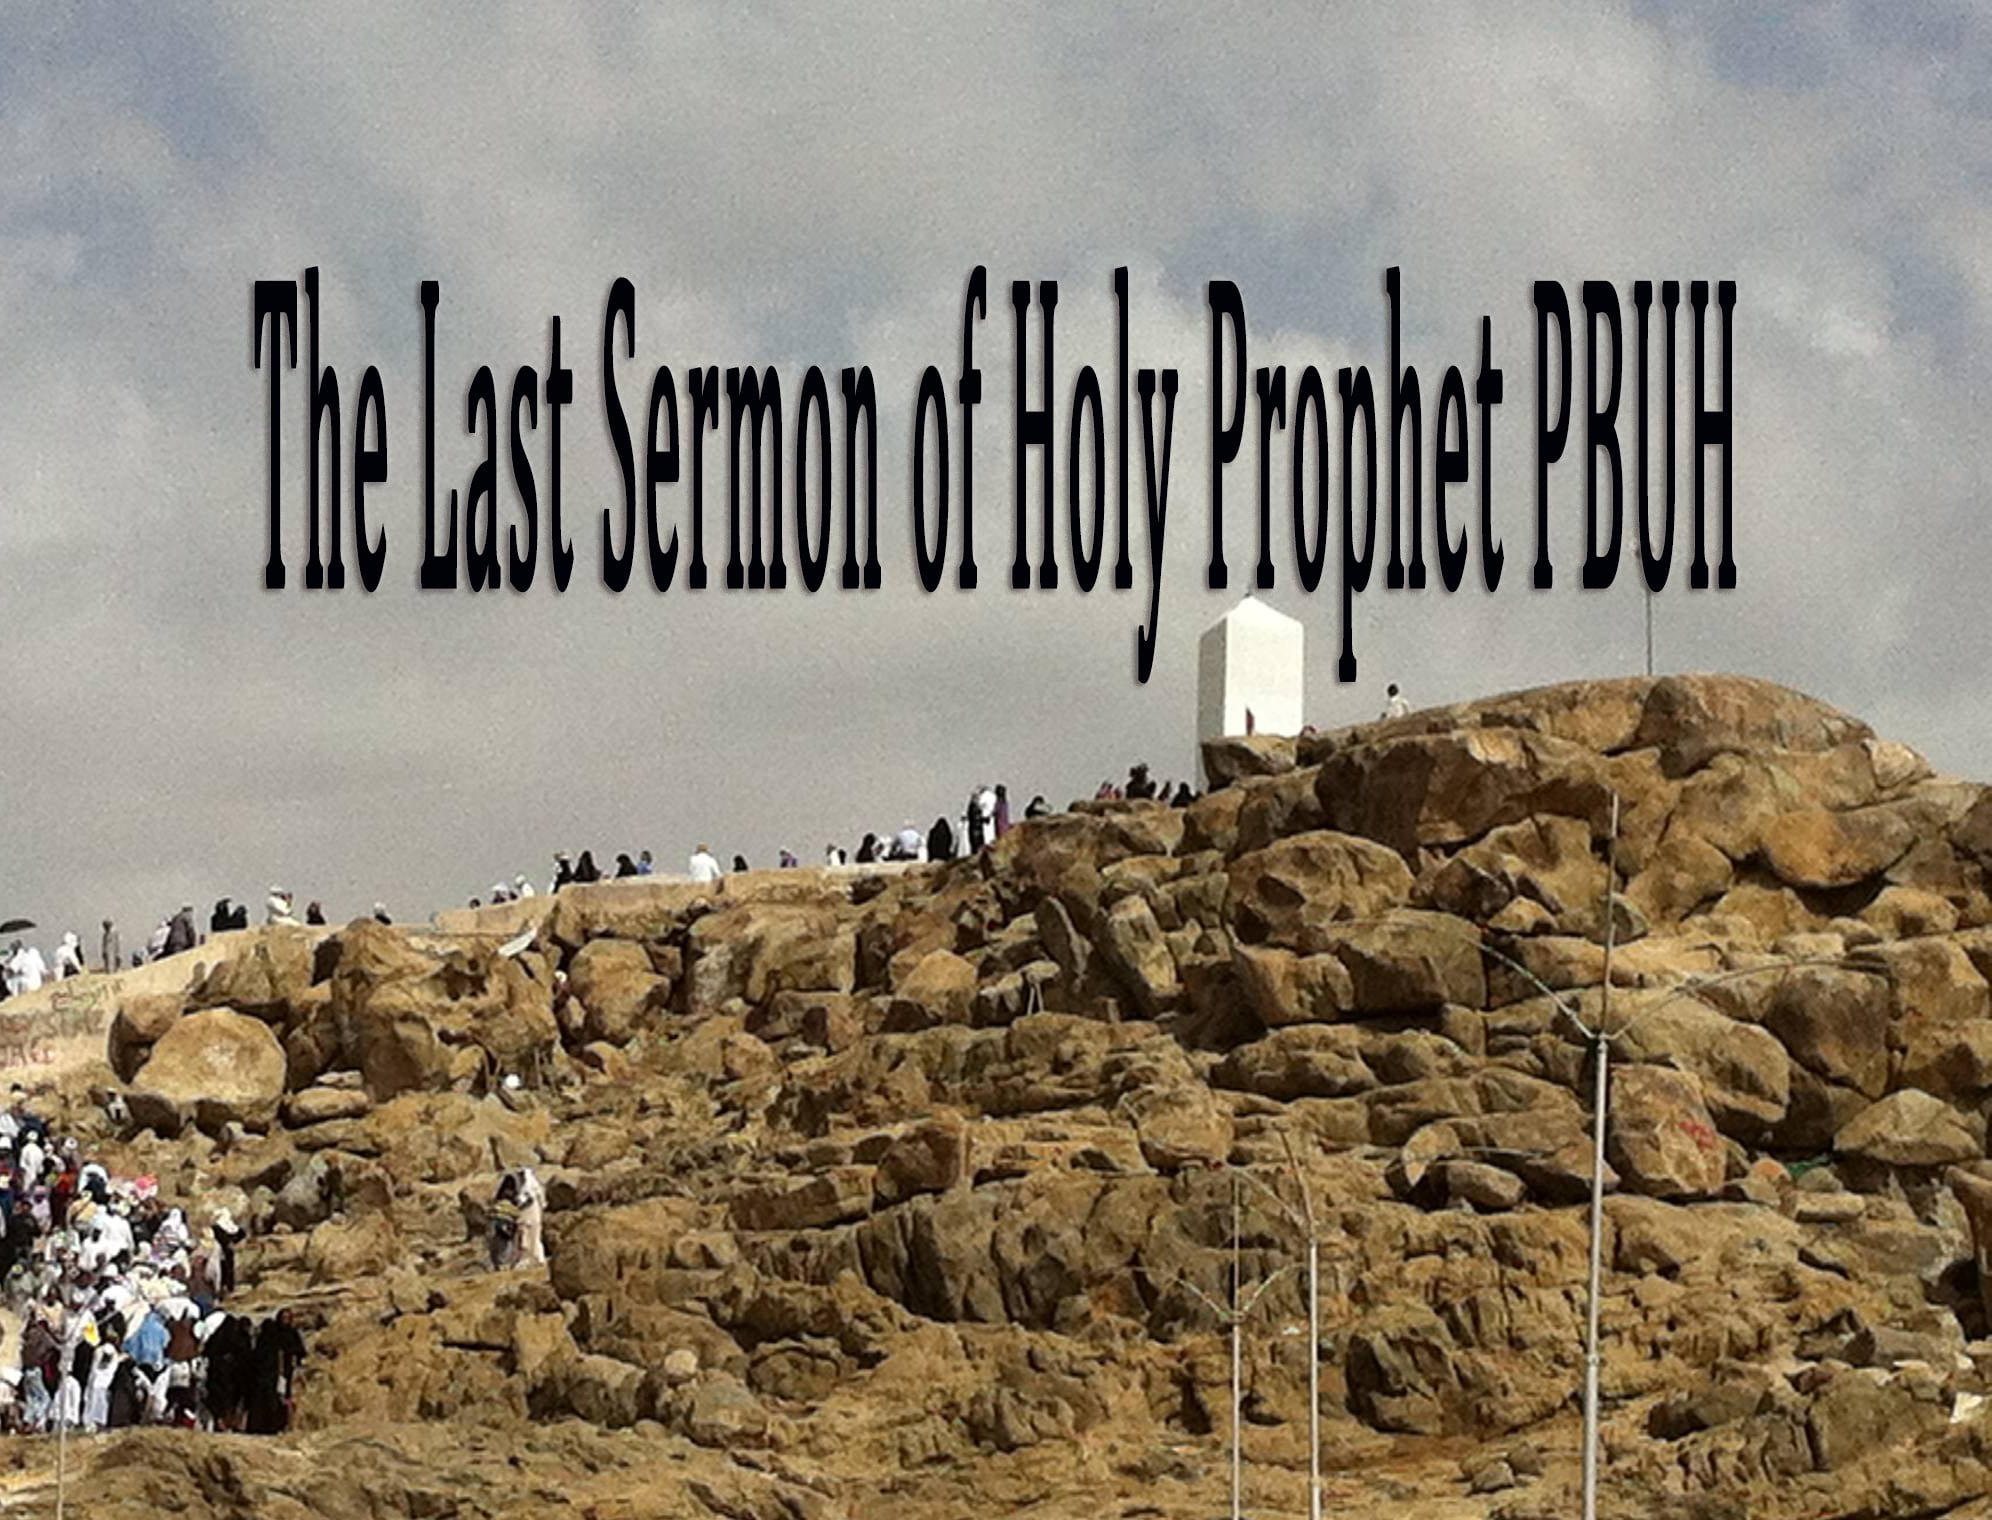 essay on holy prophet p b u h in english